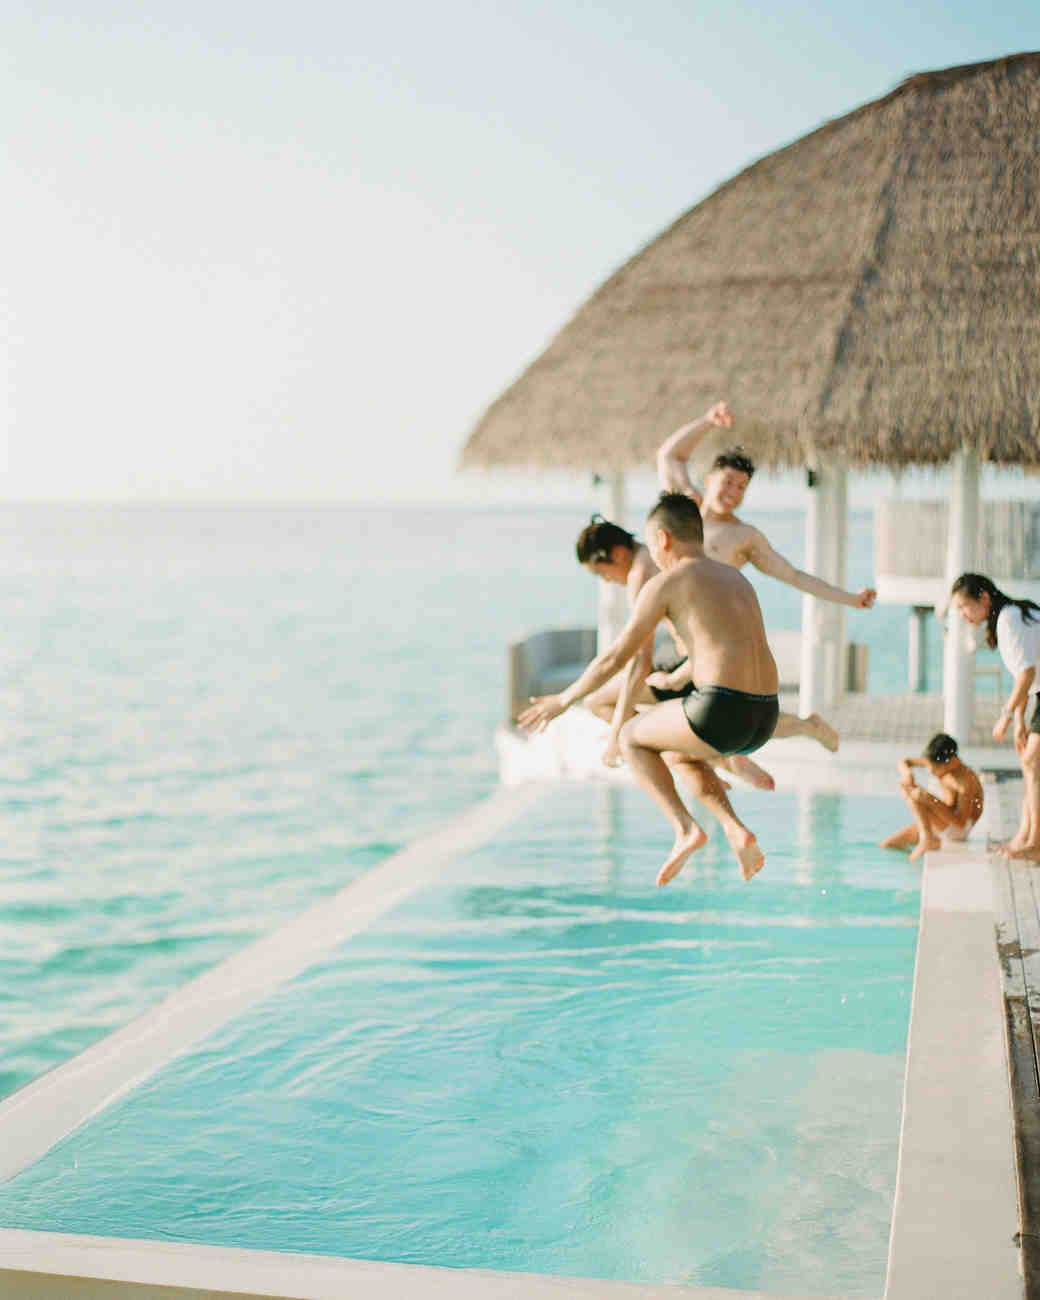 kids jumping in a pool